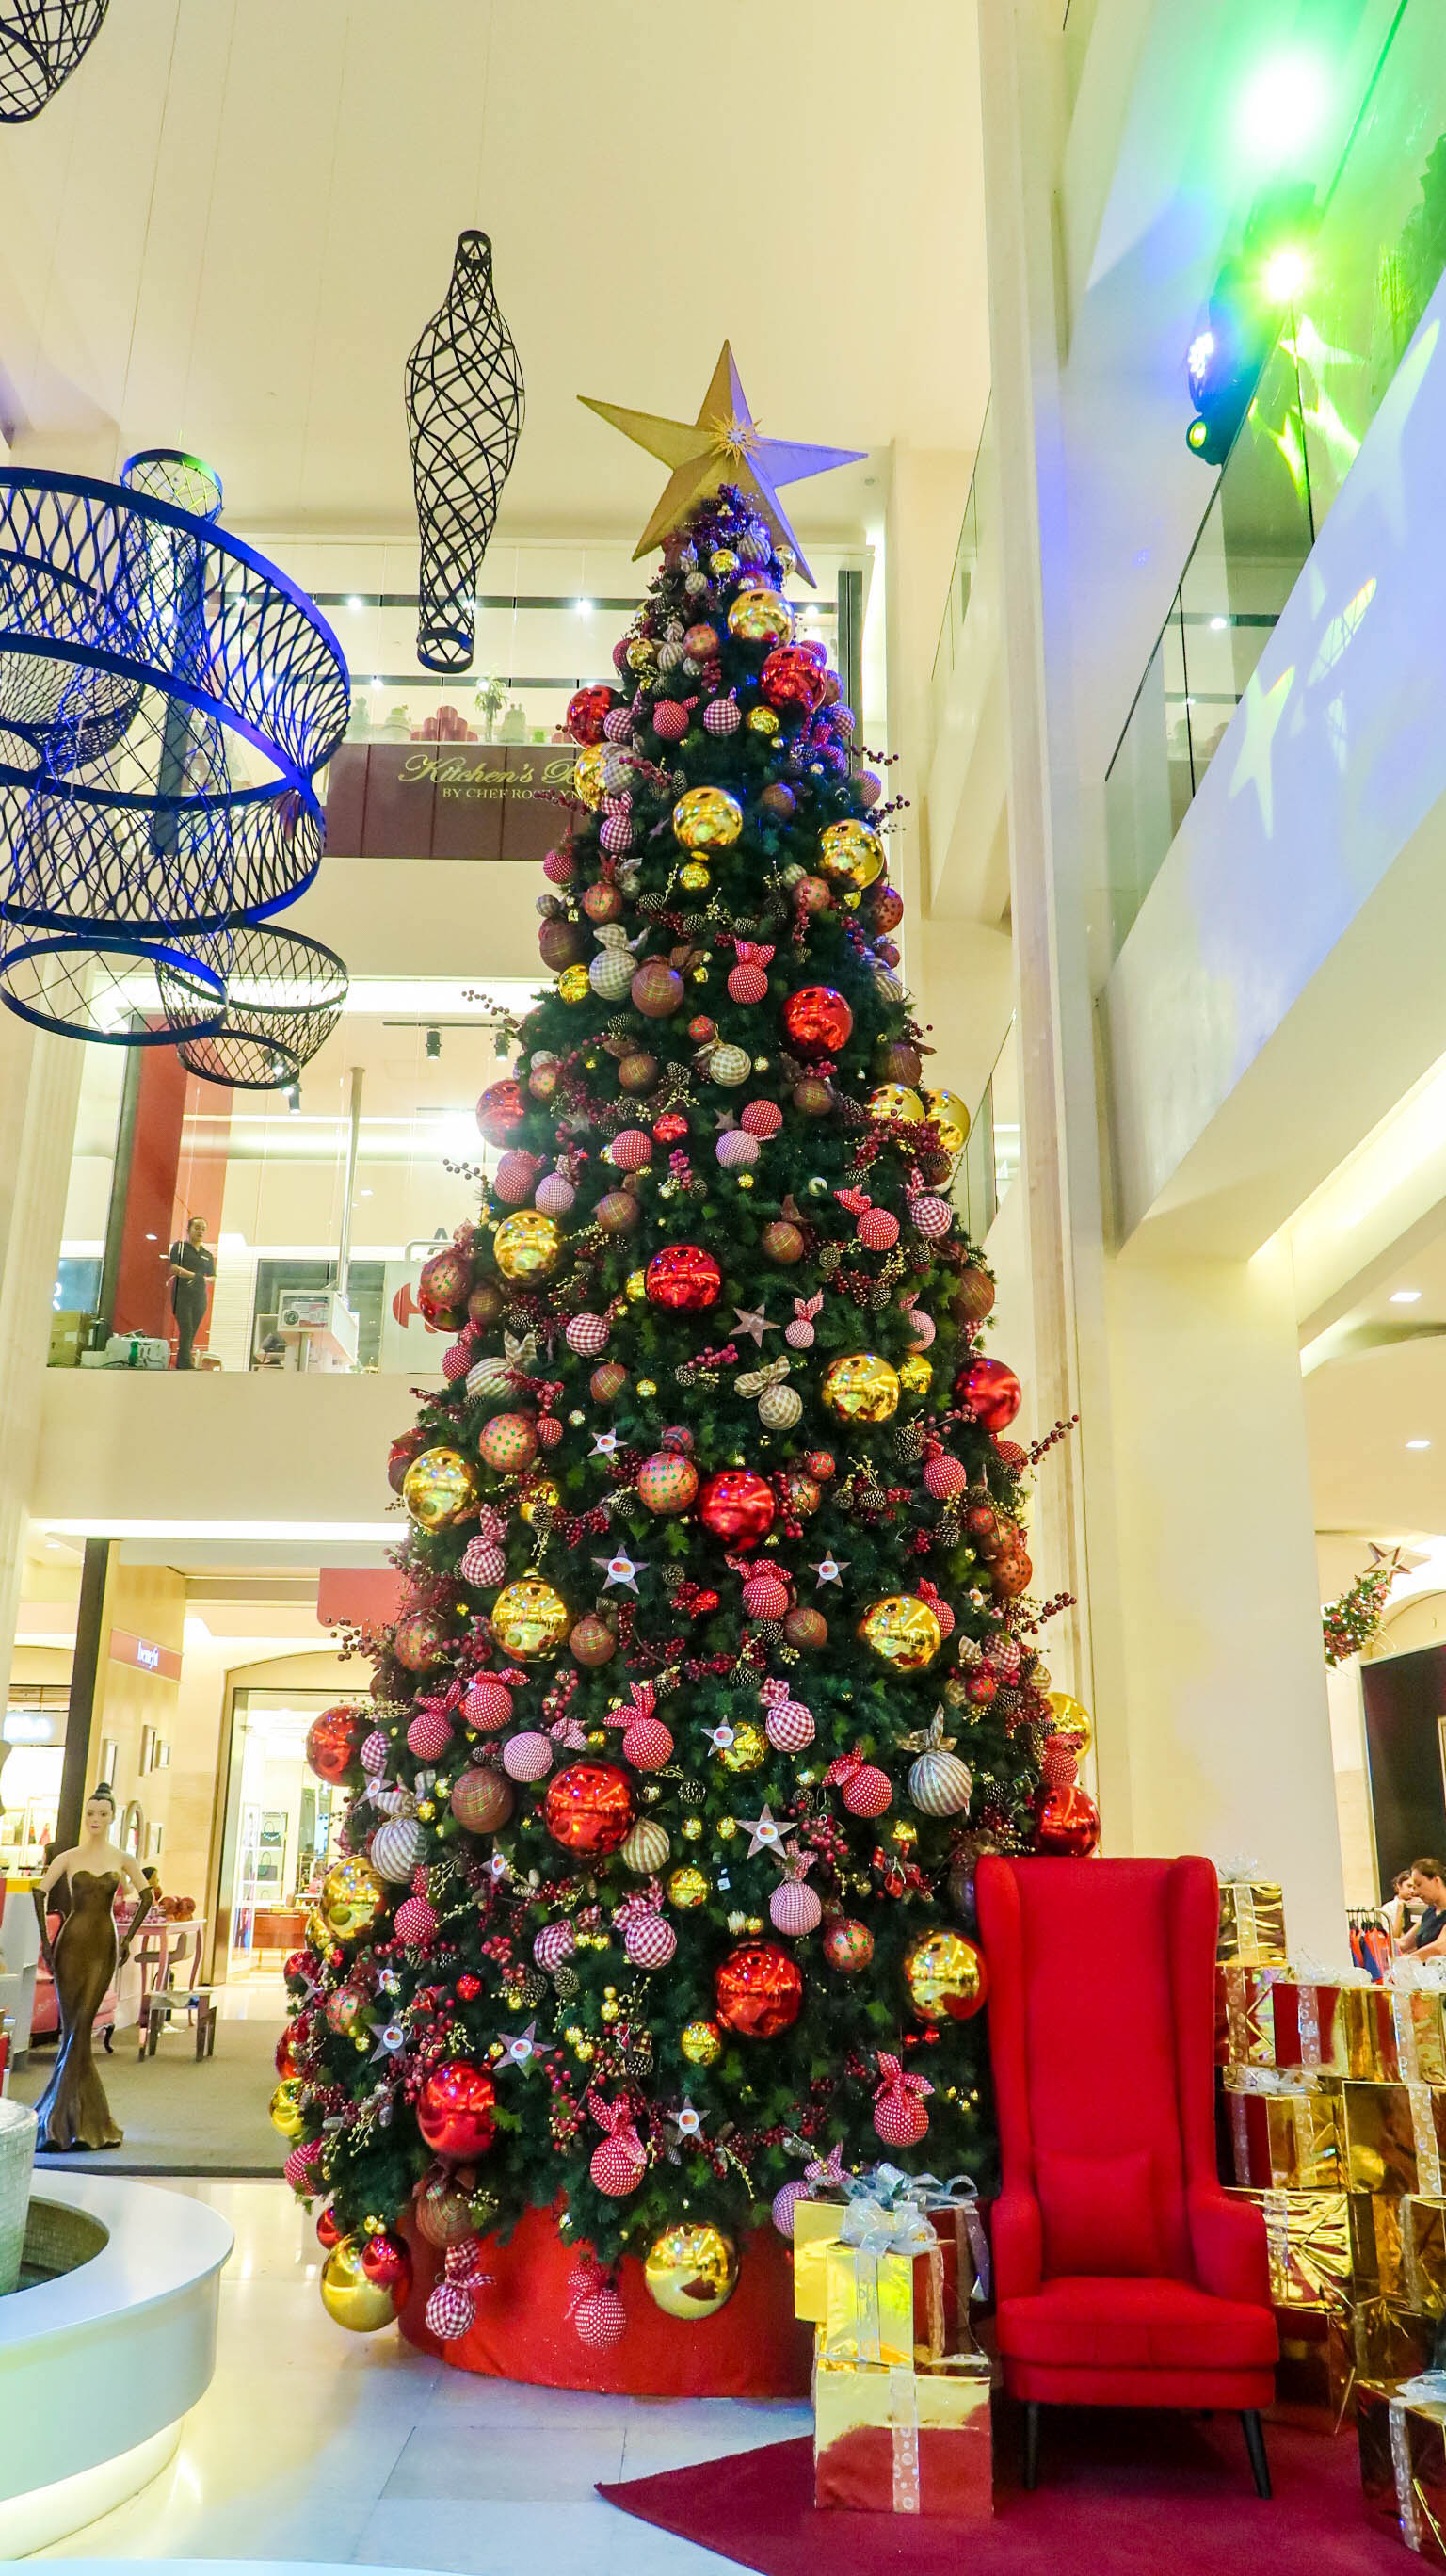 FEELING FESTIVE. Central Square's big Christmas tree is now on display. Photo by Precious del Valle/Rappler